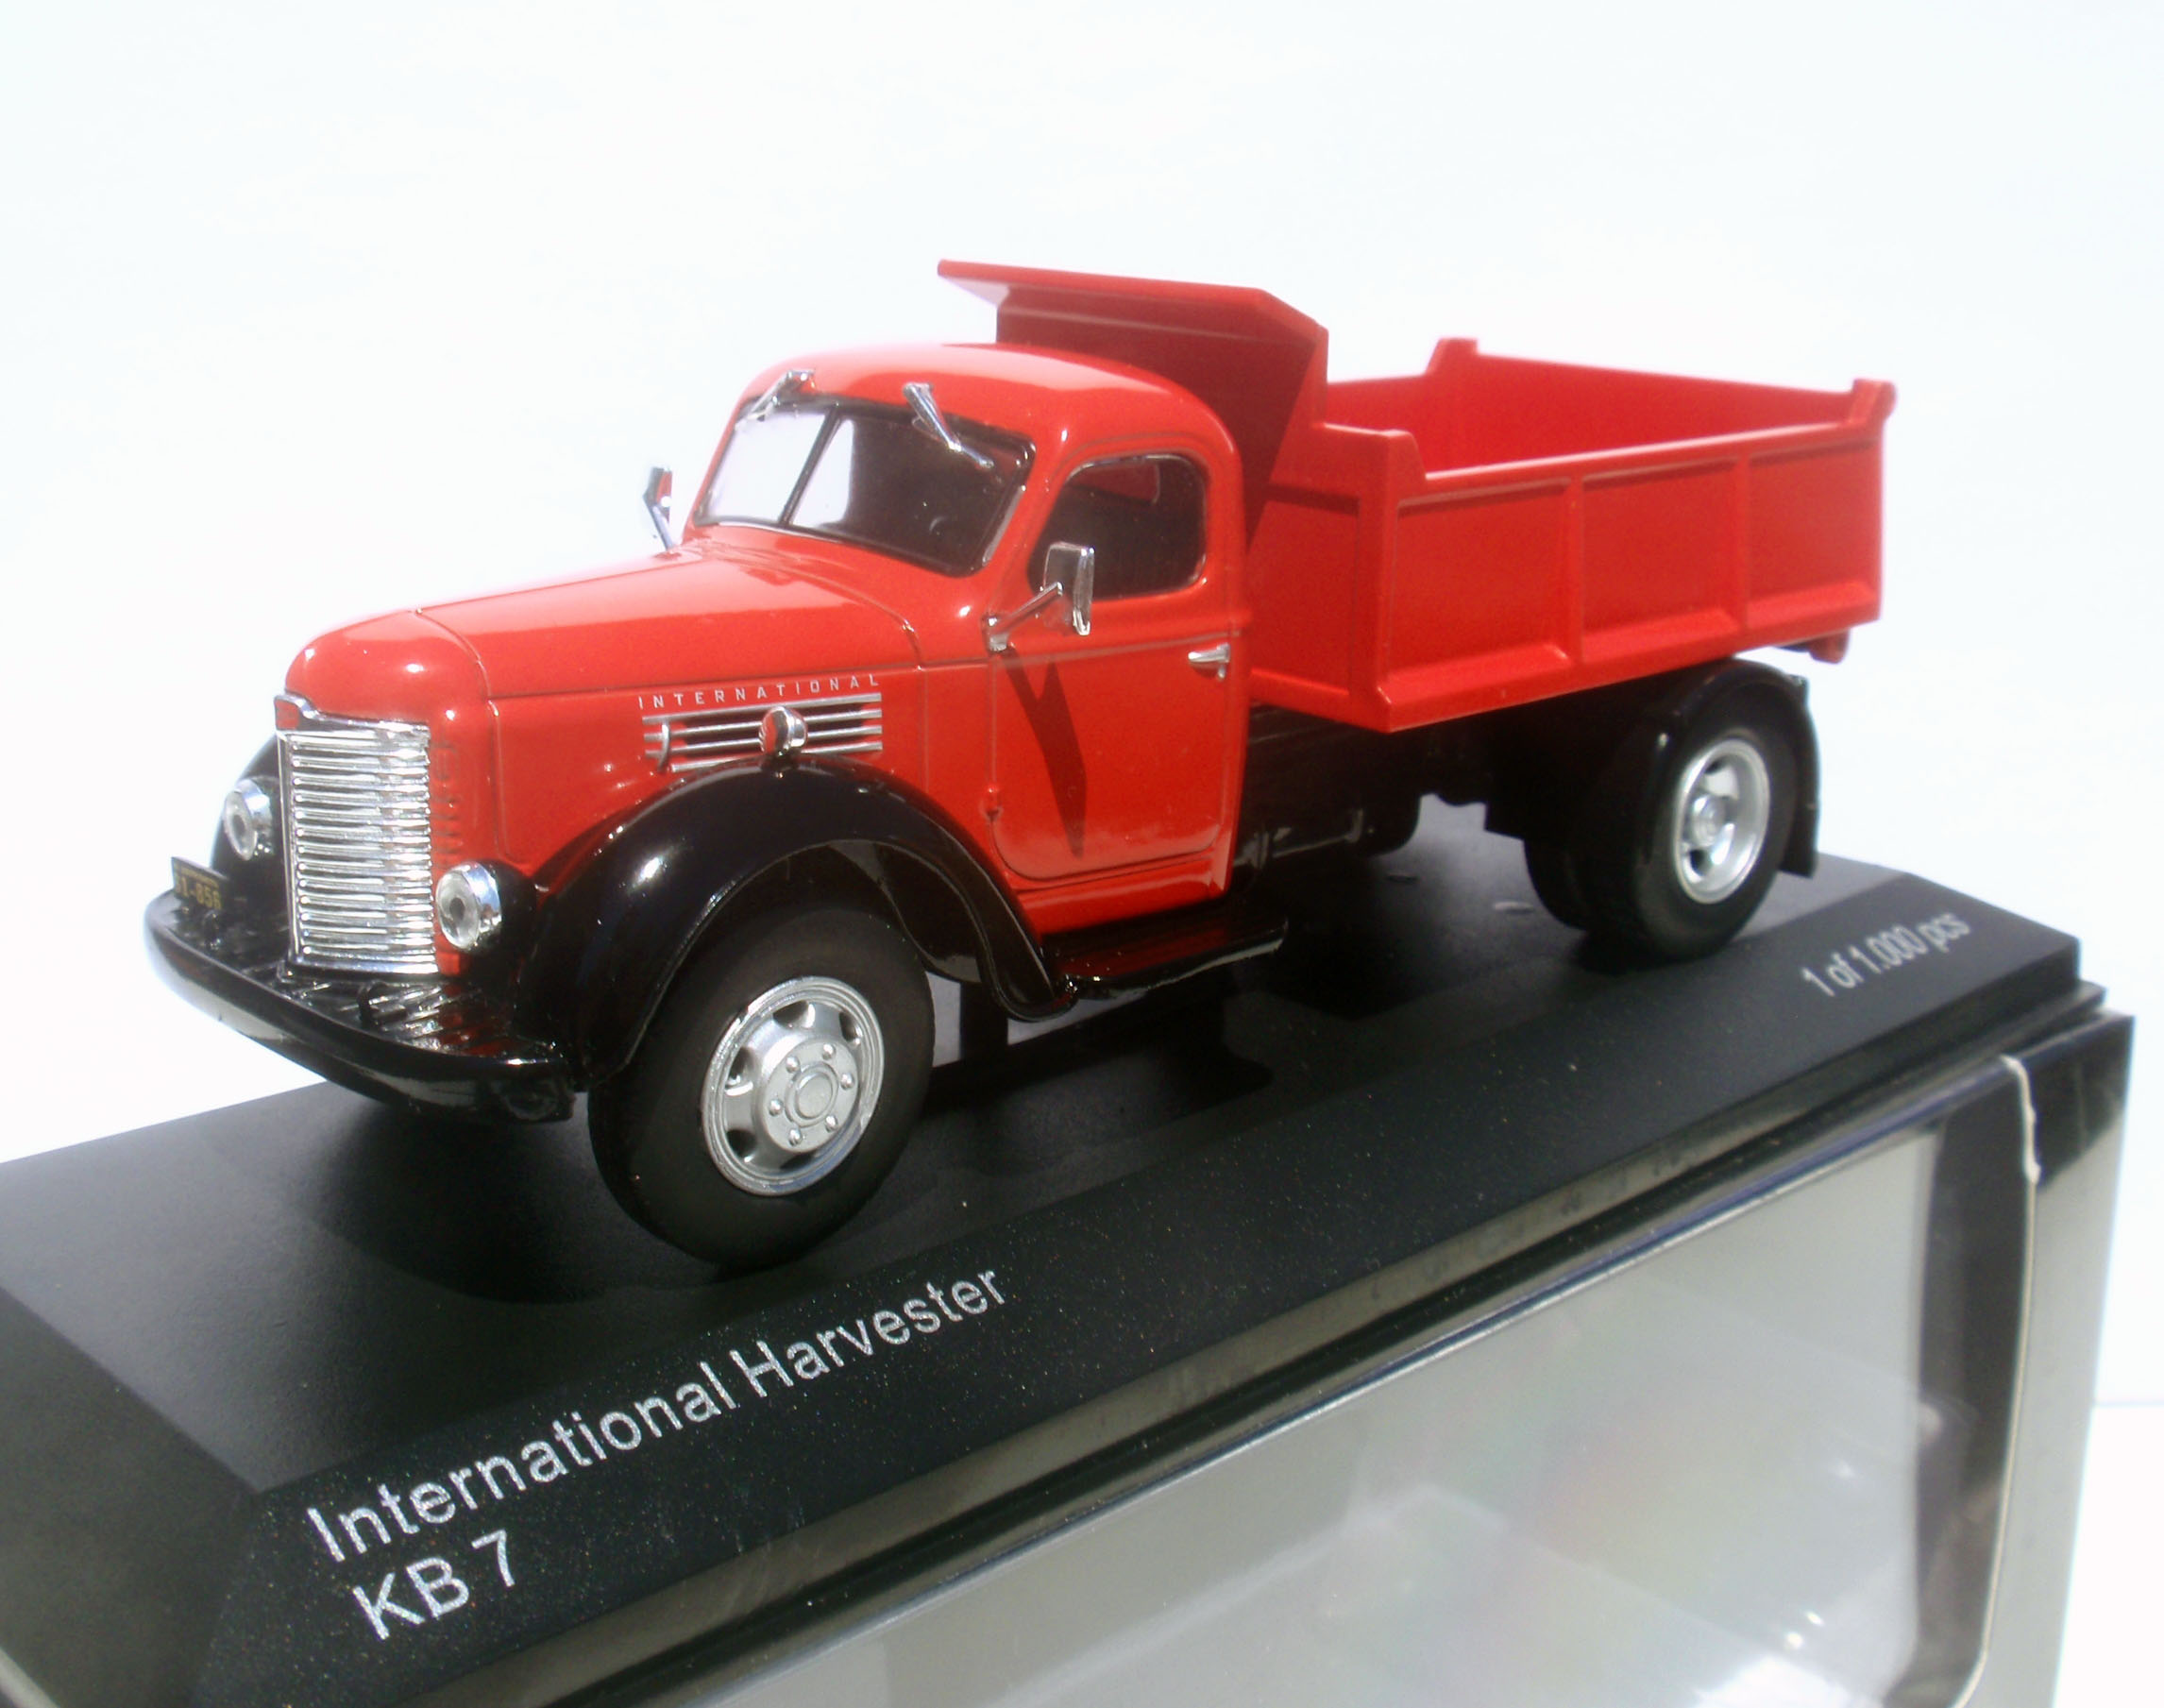 InternationalHarvesterKB7Whiteboxfront.jpg